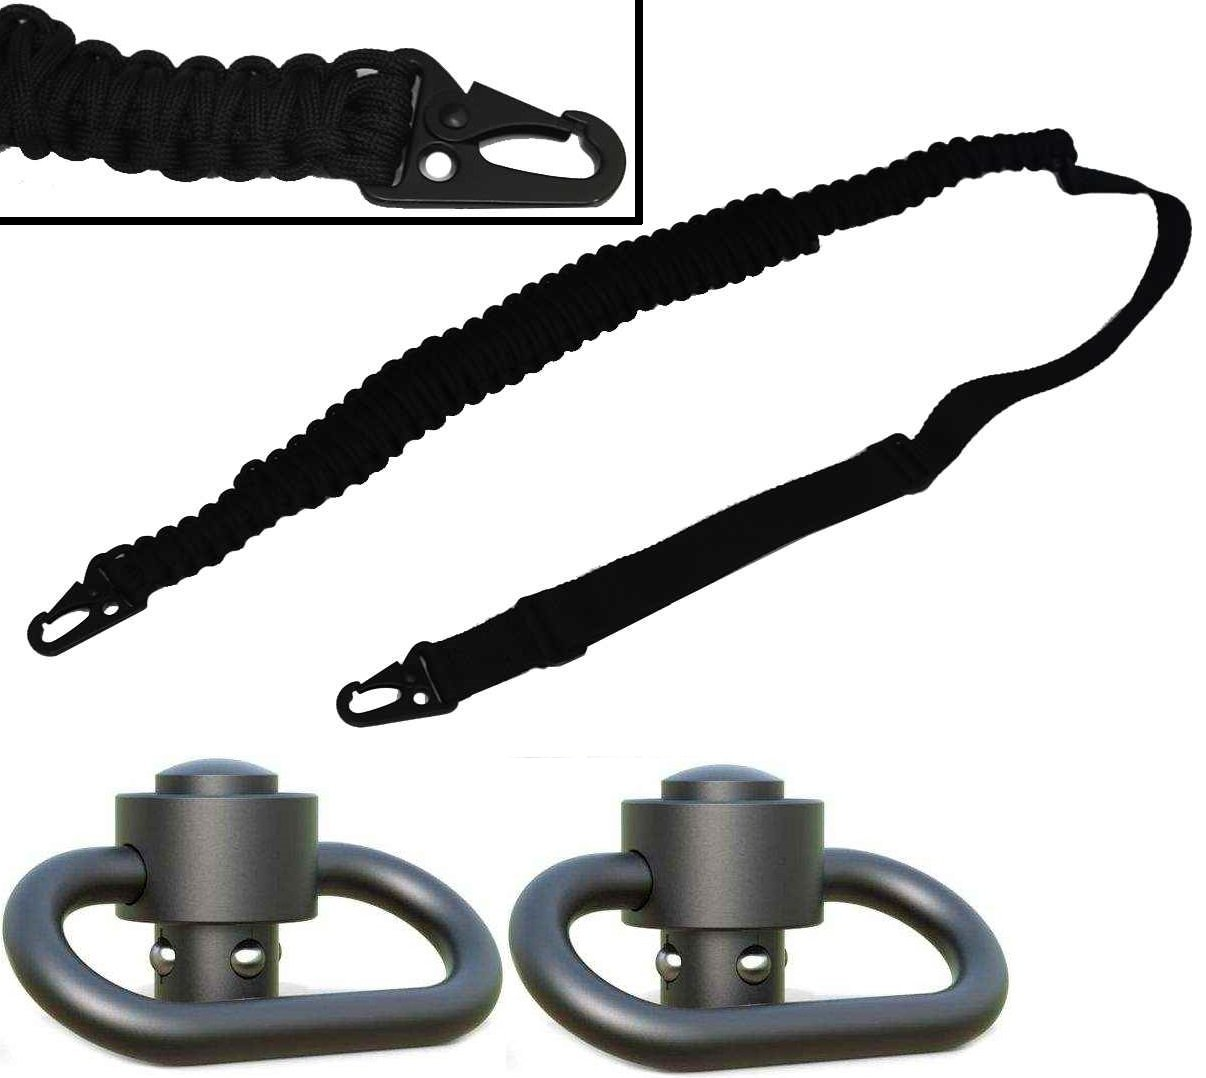 Ultimate Arms Gear Two 1.50'' QD Push Swivels + 550 lb Paracord Survial Sling, Black 56' ft Cord with Hook Ends for Ruger 1022 10/22 10-22 Mini-14 SR-556 SR-22 Rifle